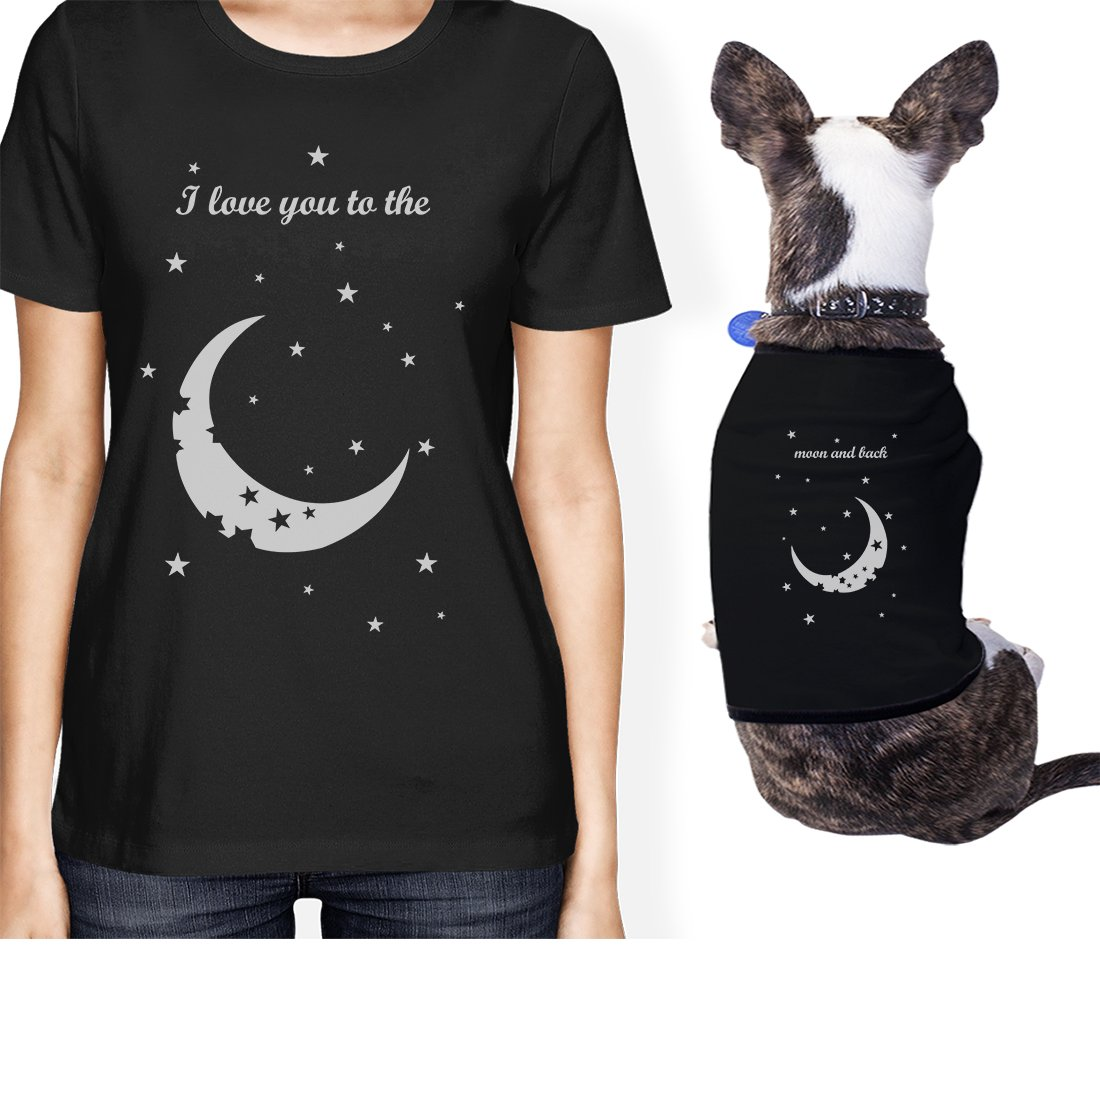 365 Printing Moon And Back Small Pet Owner Matching Gift Outfits Womens T-Shirt (ONWER - XL / PET - M) by 365 Printing